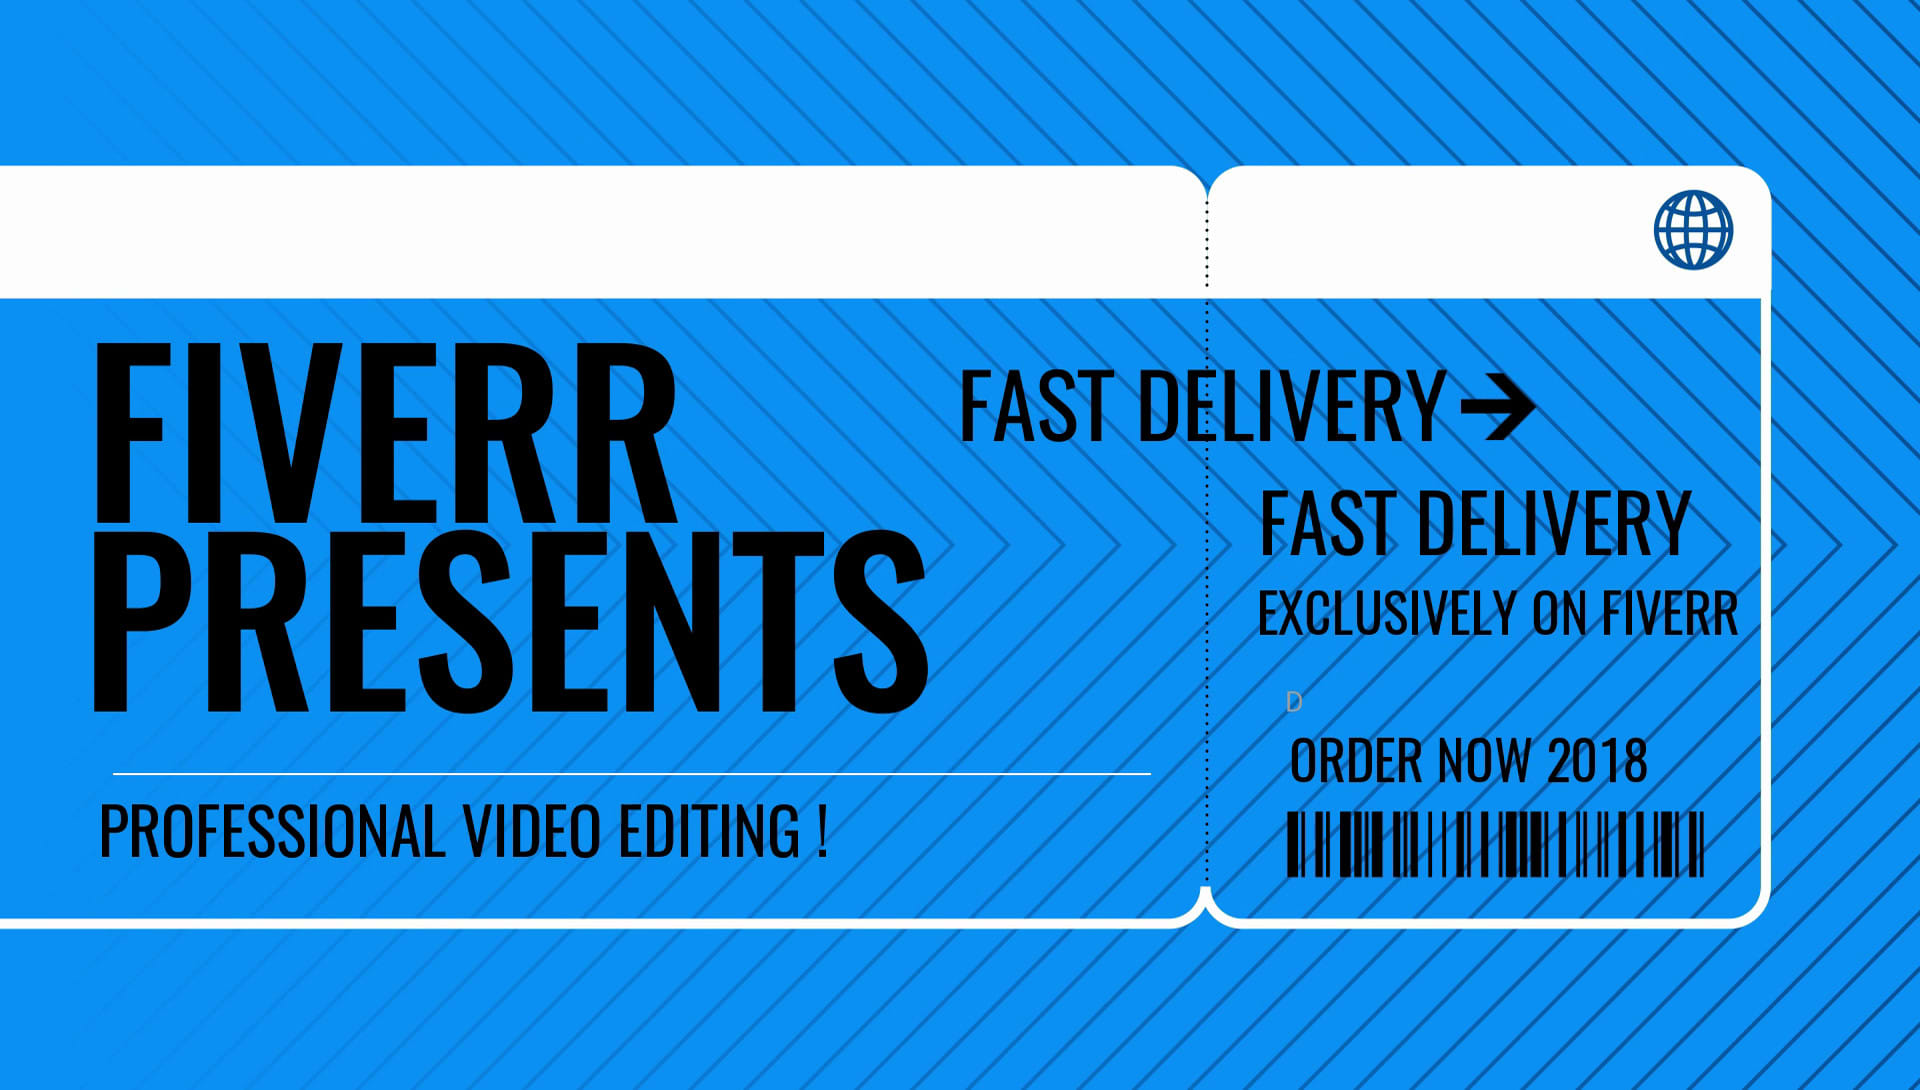 professional video editing with a quick delivery